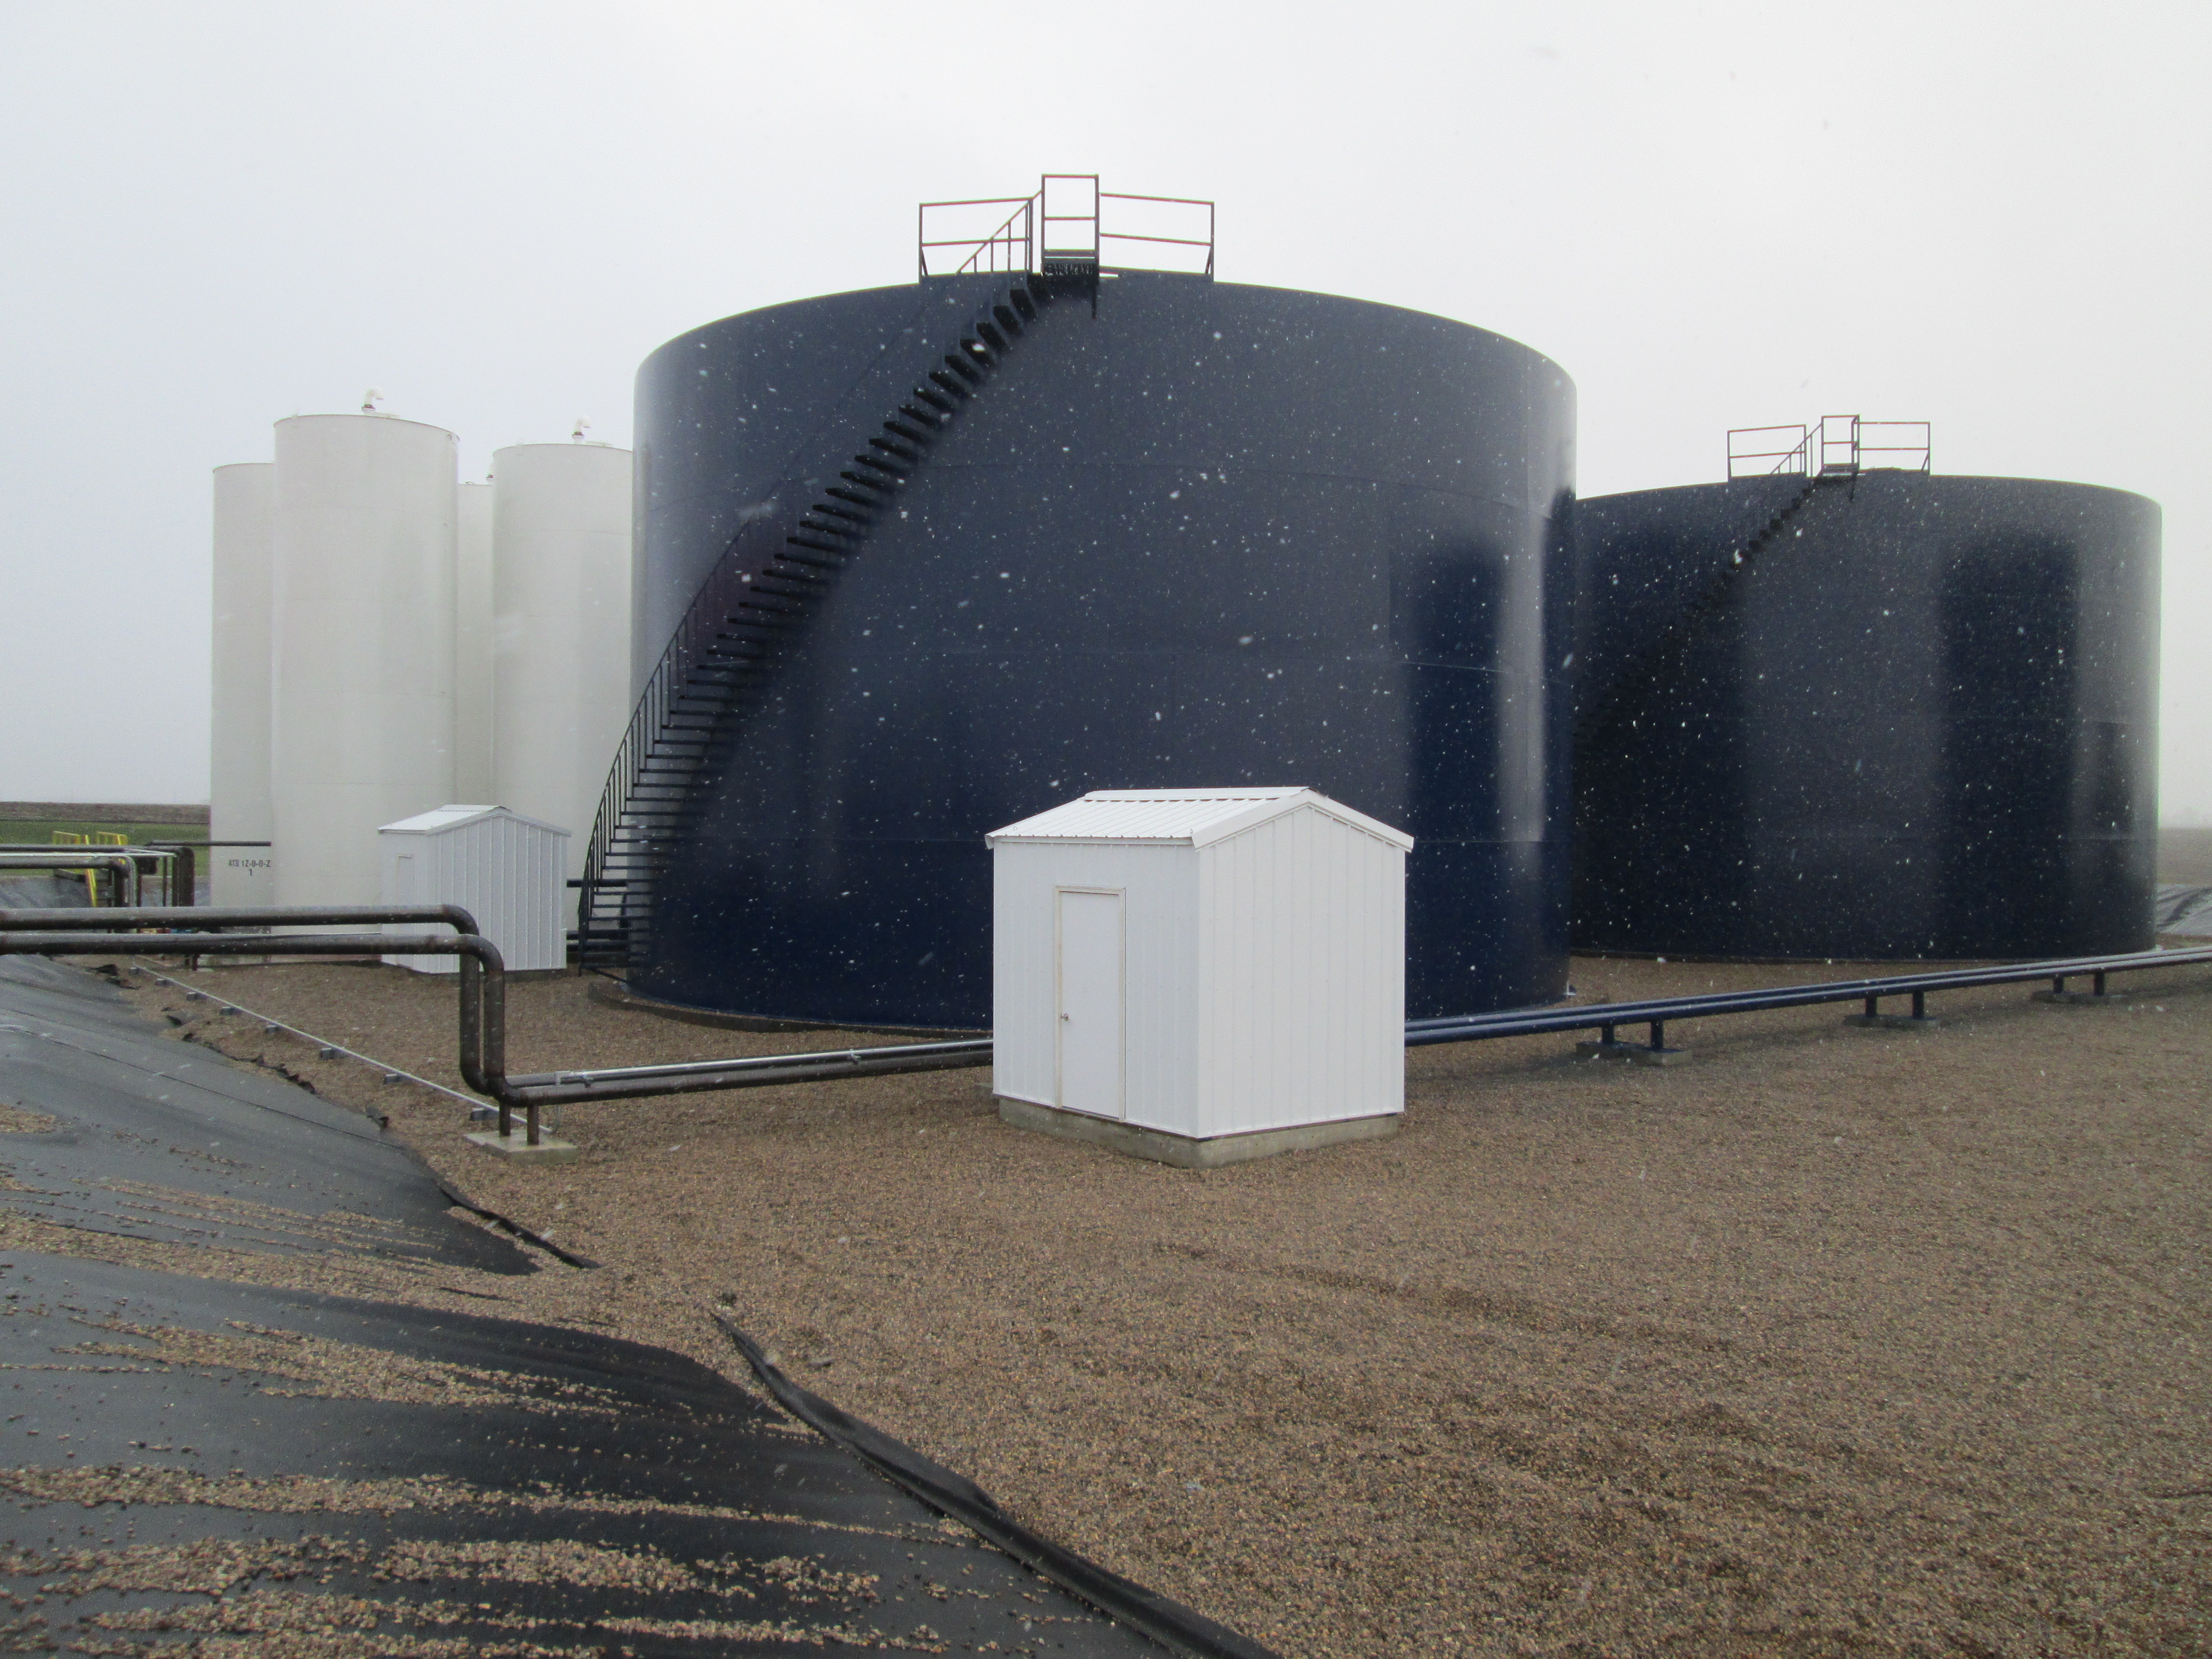 Photo shows field erected and manufactured fertilizer tanks located in an outdoor fertilizer containment dike.